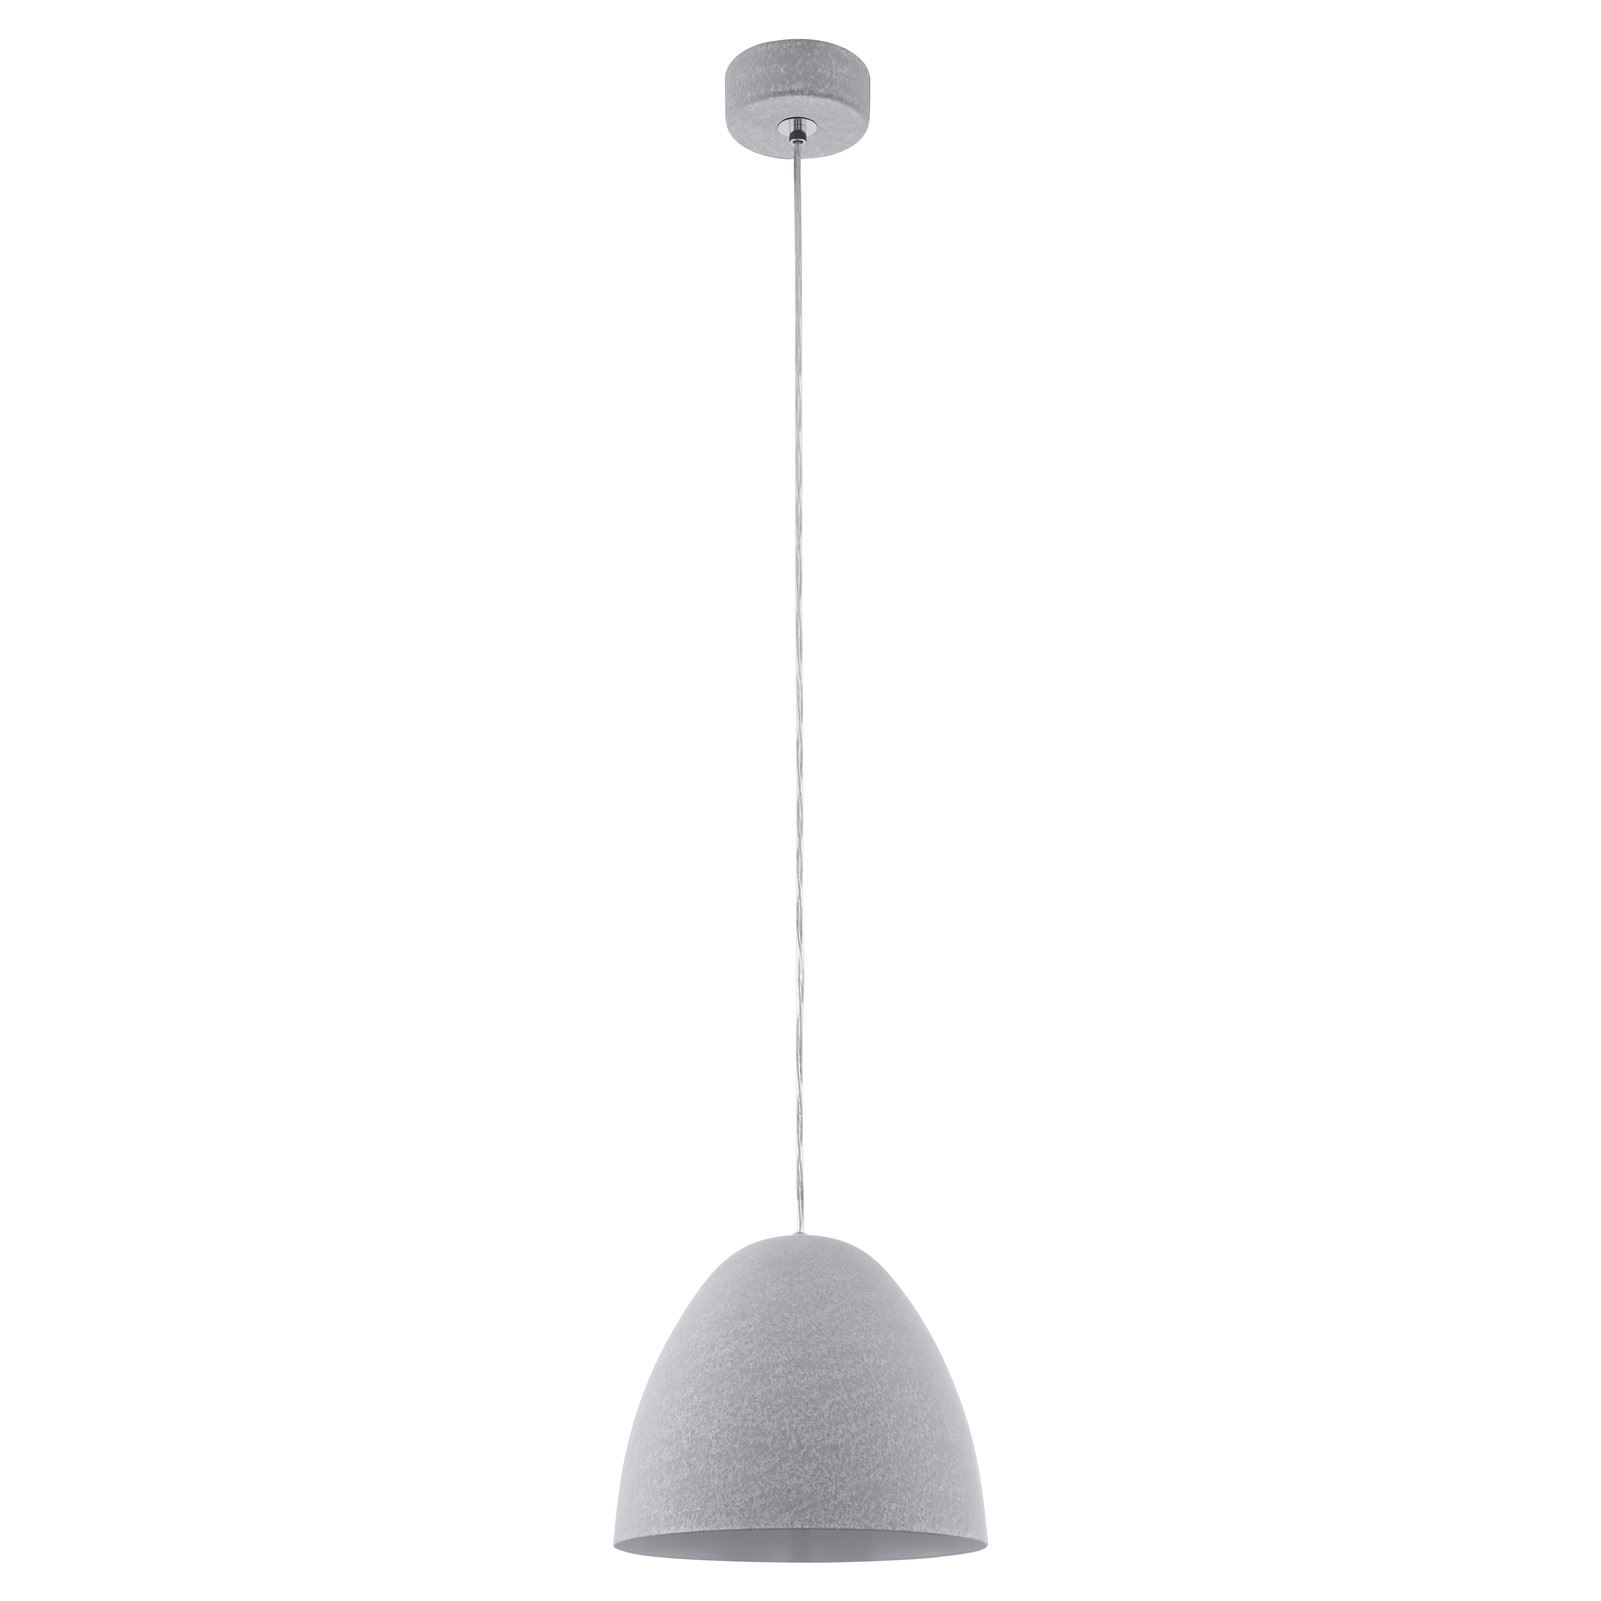 Sarabia Pendant Light E27 Dia 275mm Concrete Grey Optic Pendant Light